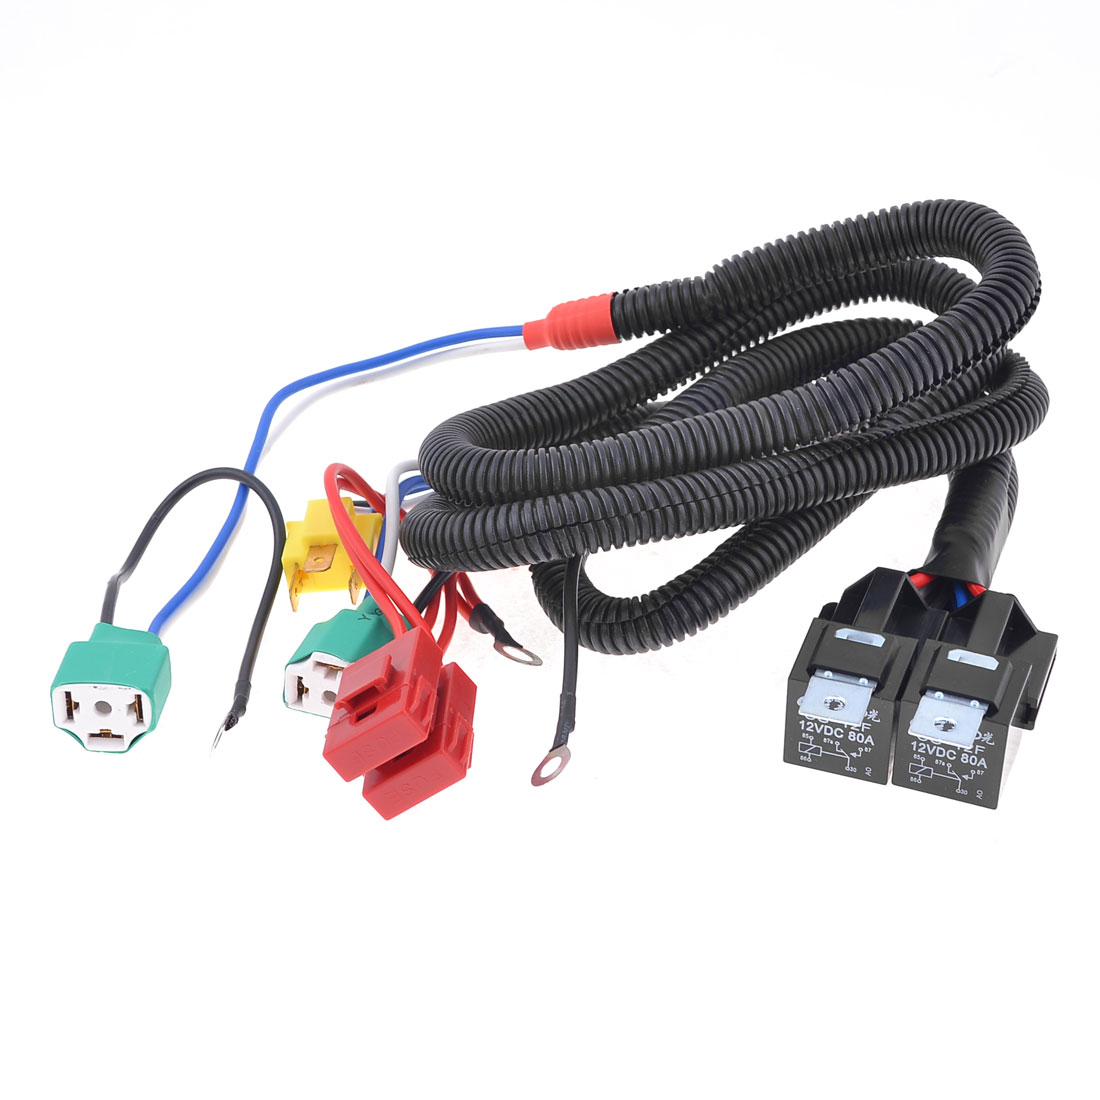 Auto Car 30A Fuse 2 H4 HID Headlight Female Connector Relay Harness Wire